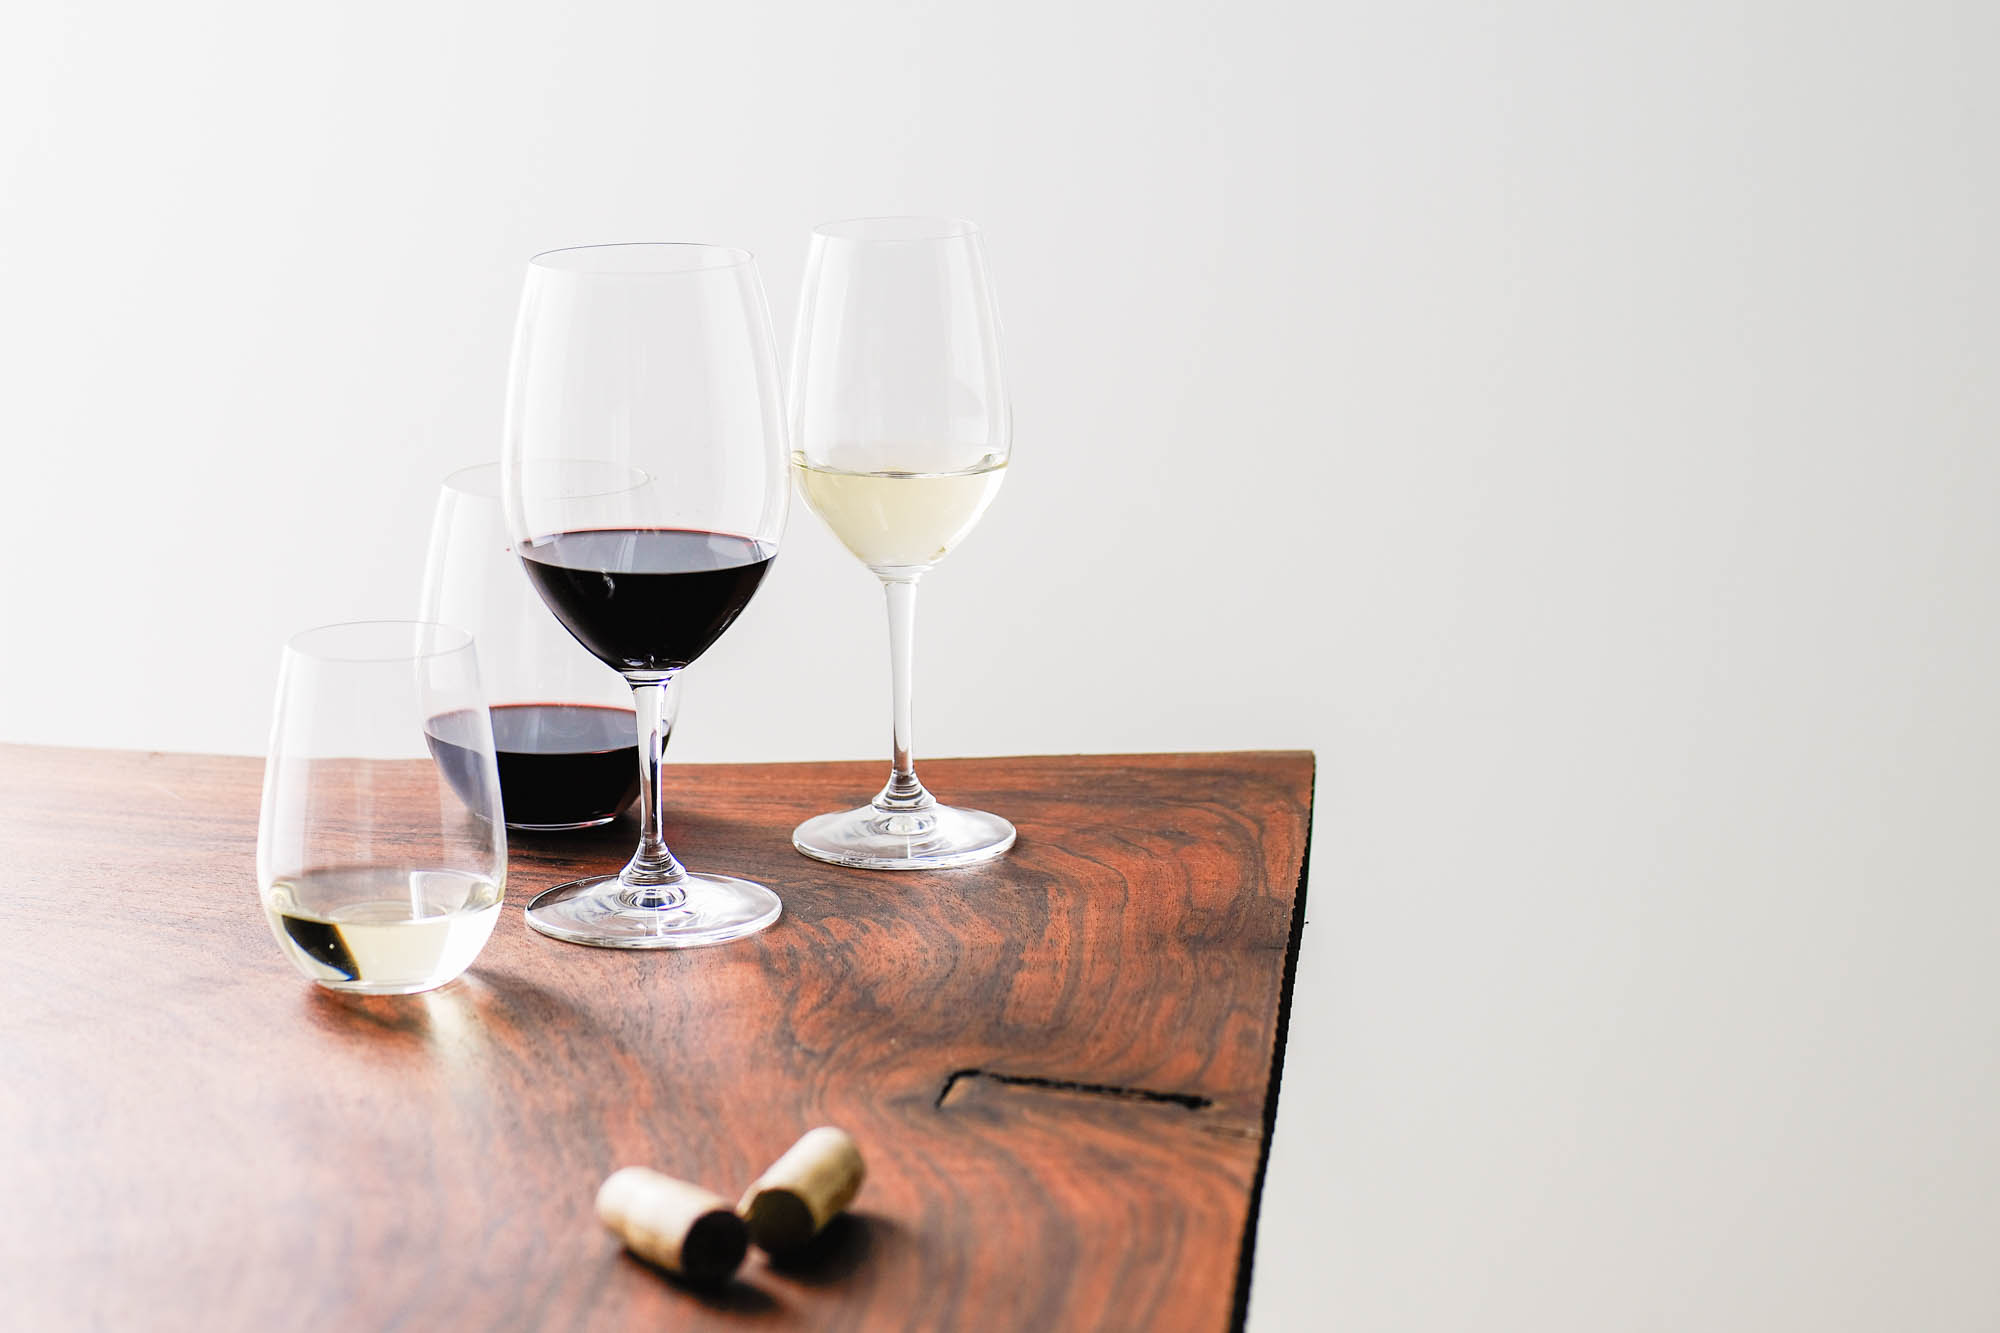 Glasses of red and white wine sitting on table